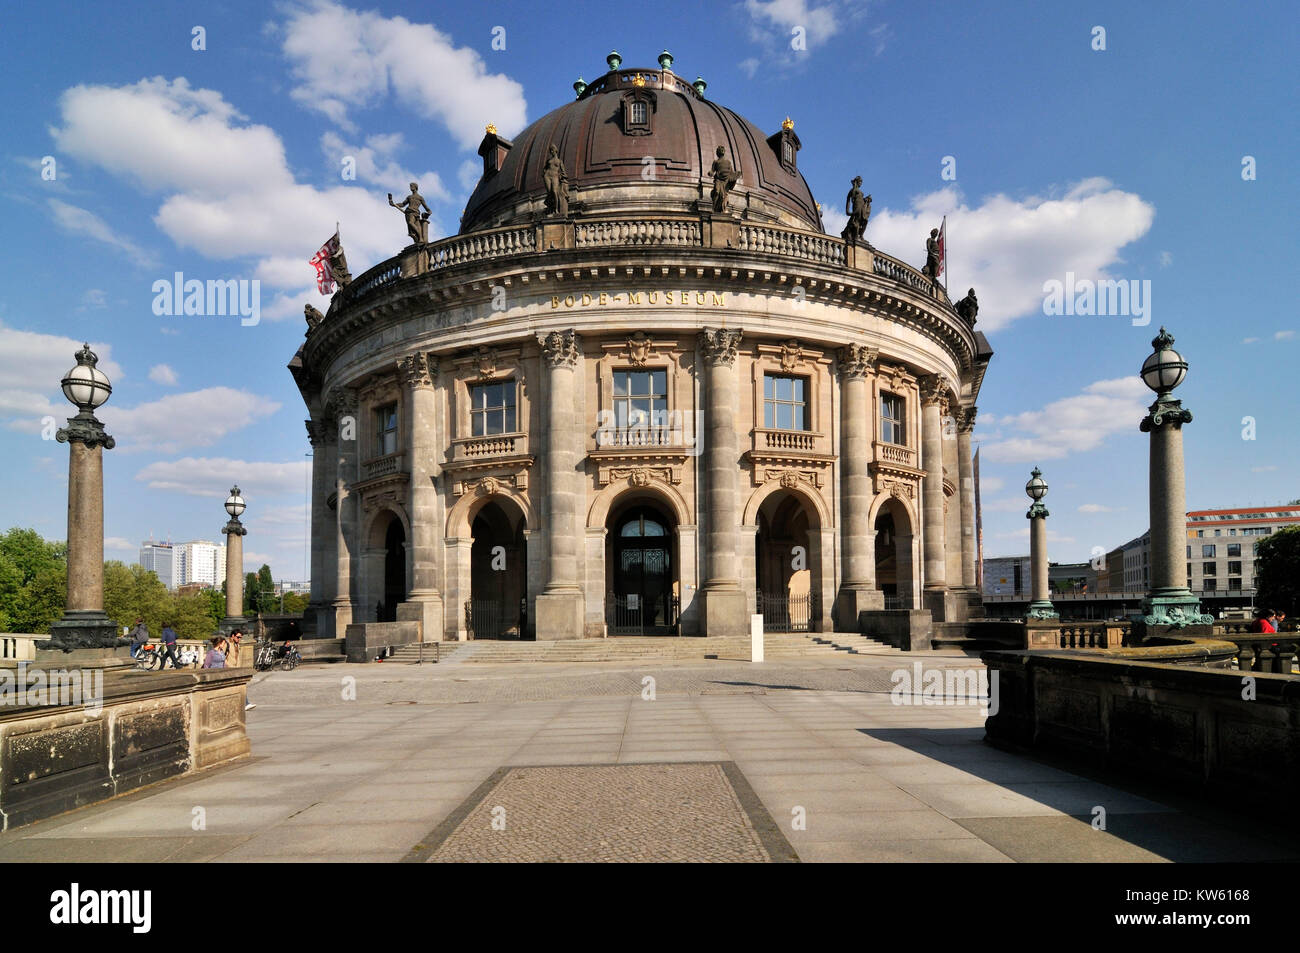 Bode museum on the museum island,  , Bode Museum auf der Museumsinsel Stock Photo